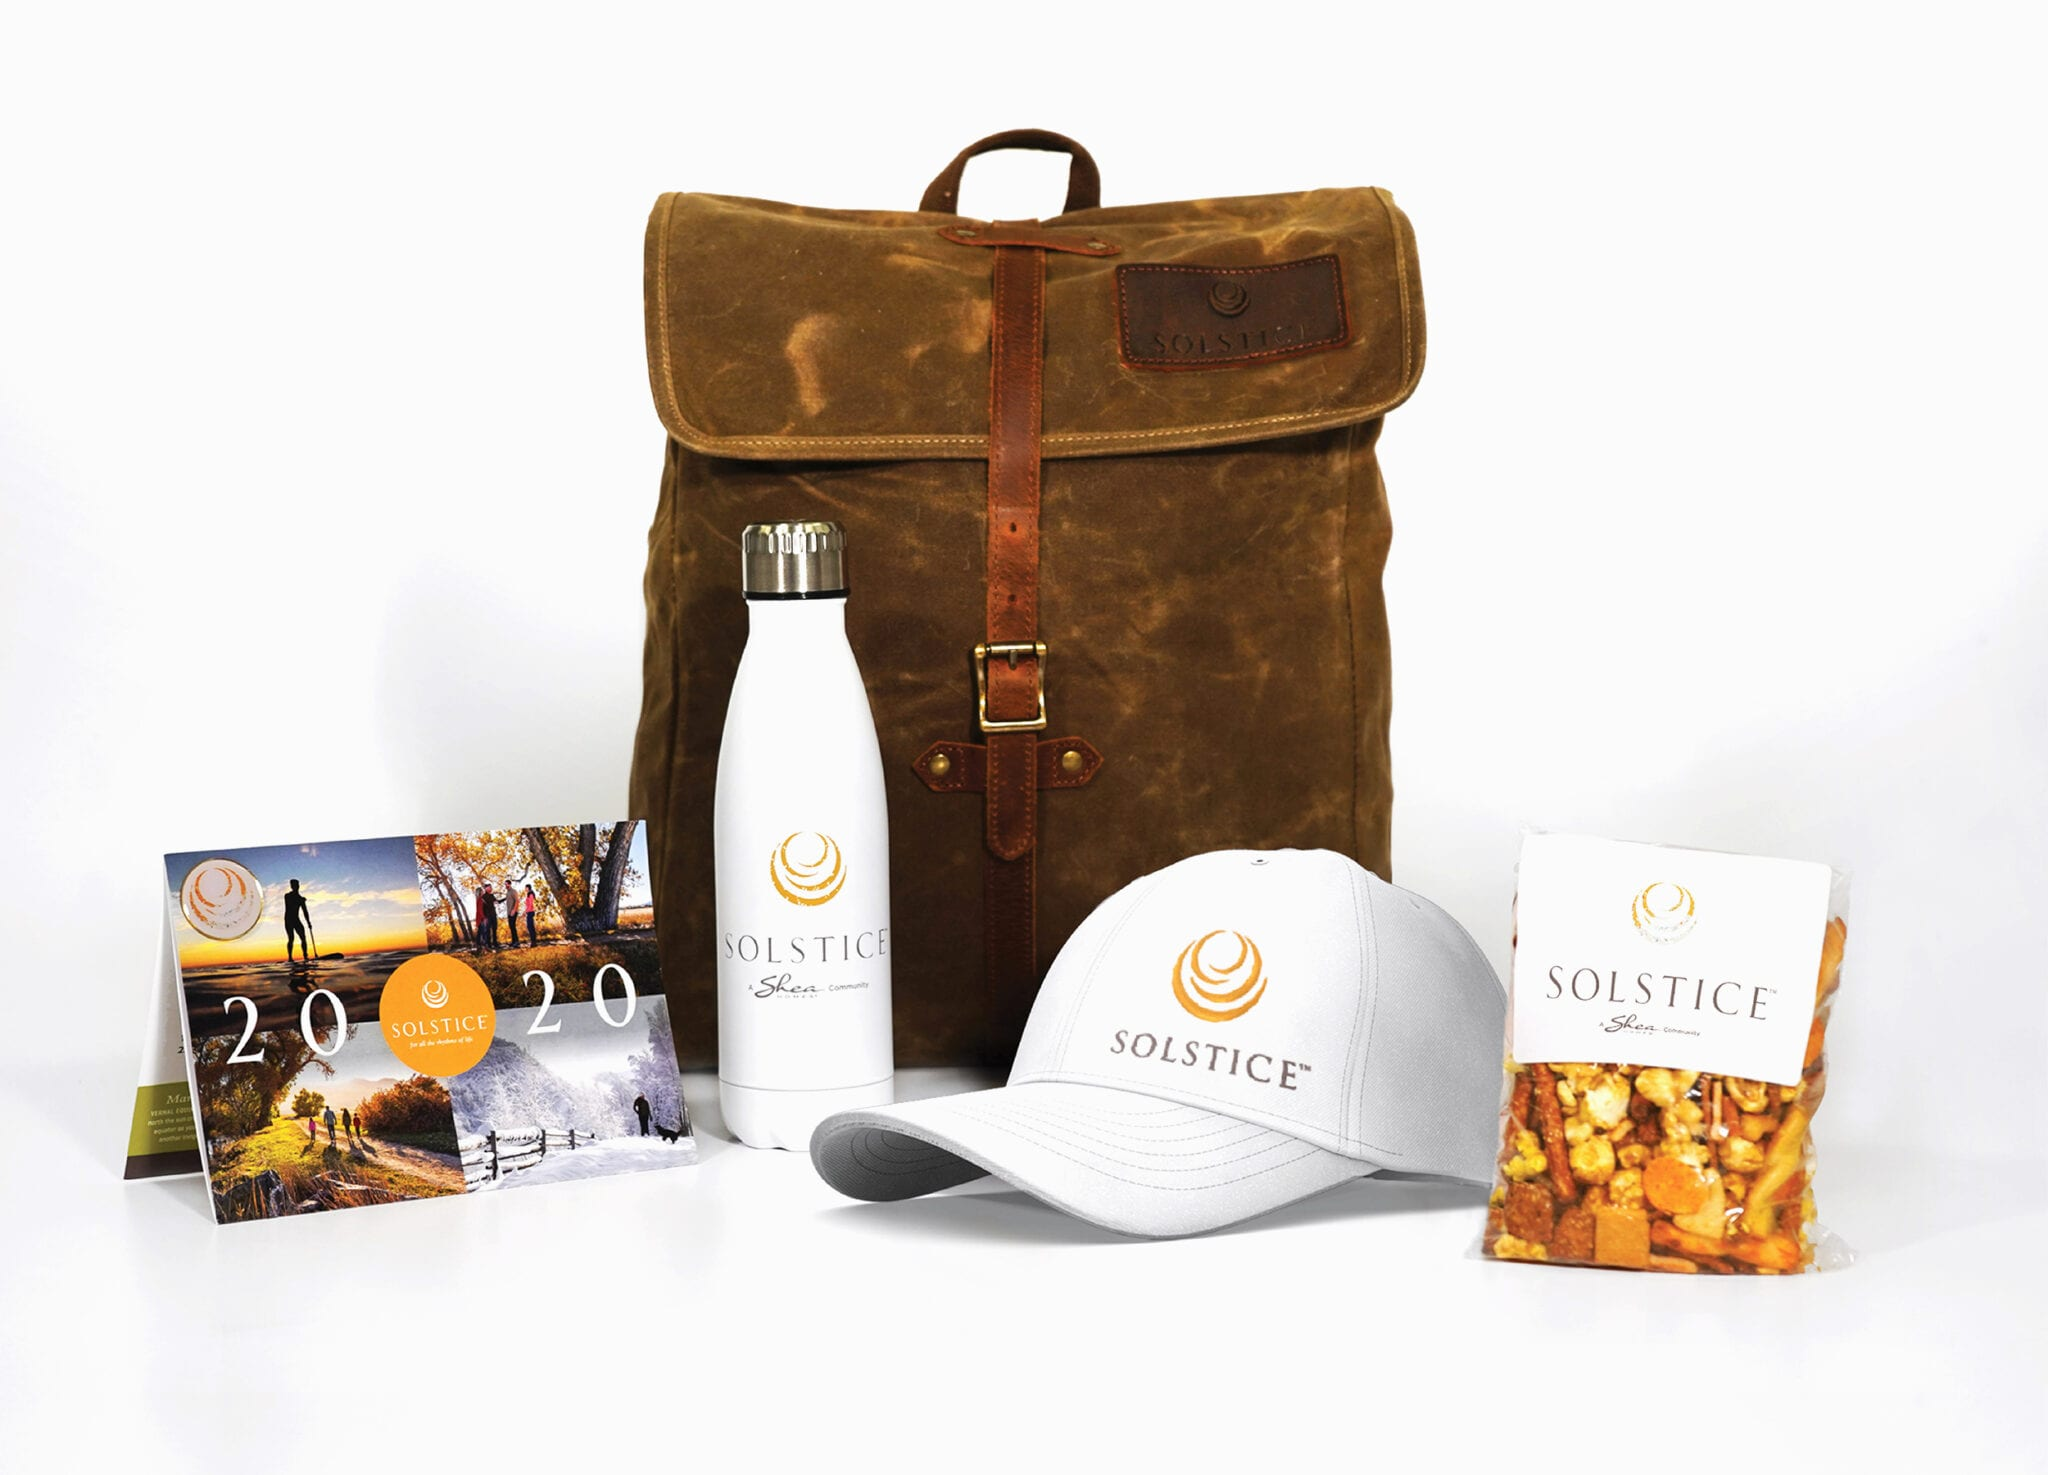 Solstice Bag and Accessories